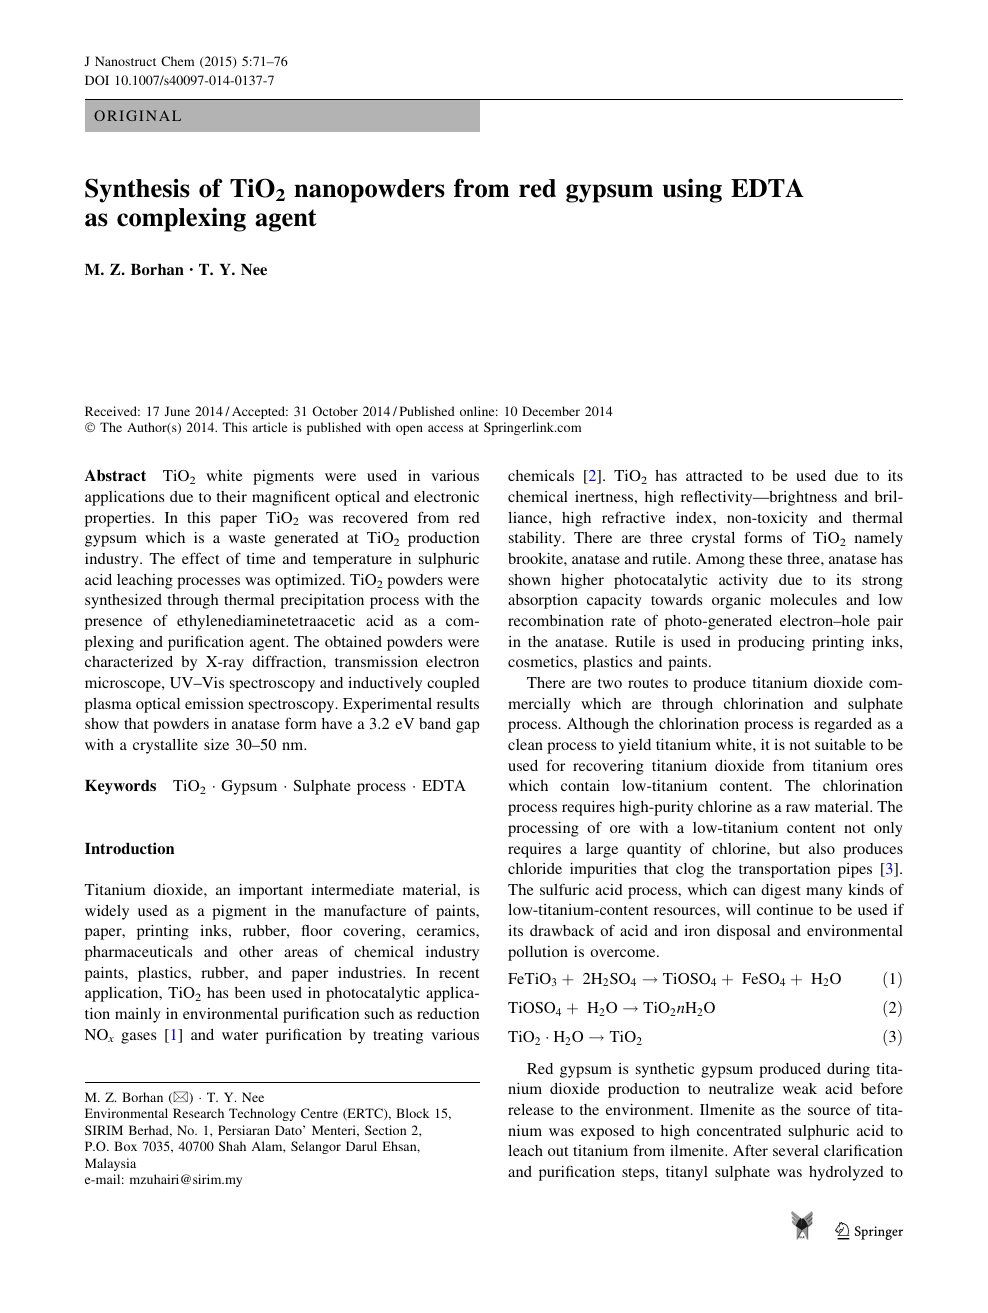 Synthesis of TiO2 nanopowders from red gypsum using EDTA as